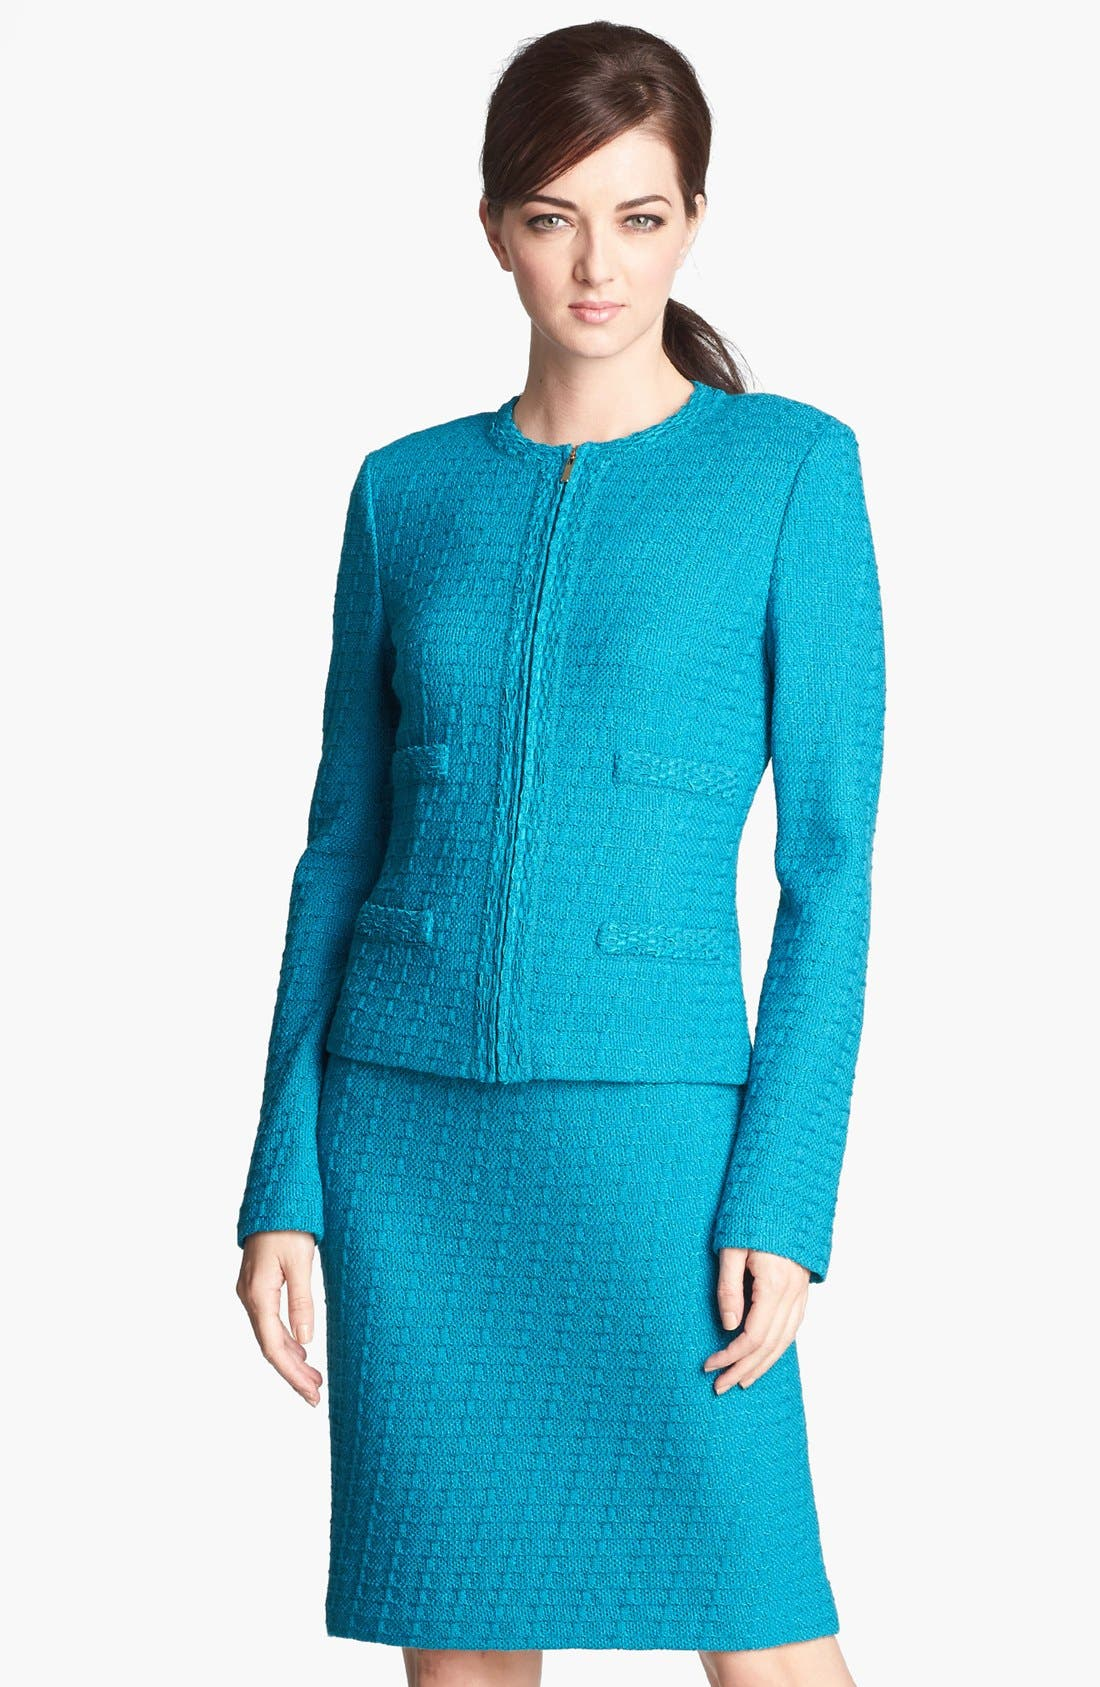 Alternate Image 1 Selected - St. John Collection Box Knit Jacket